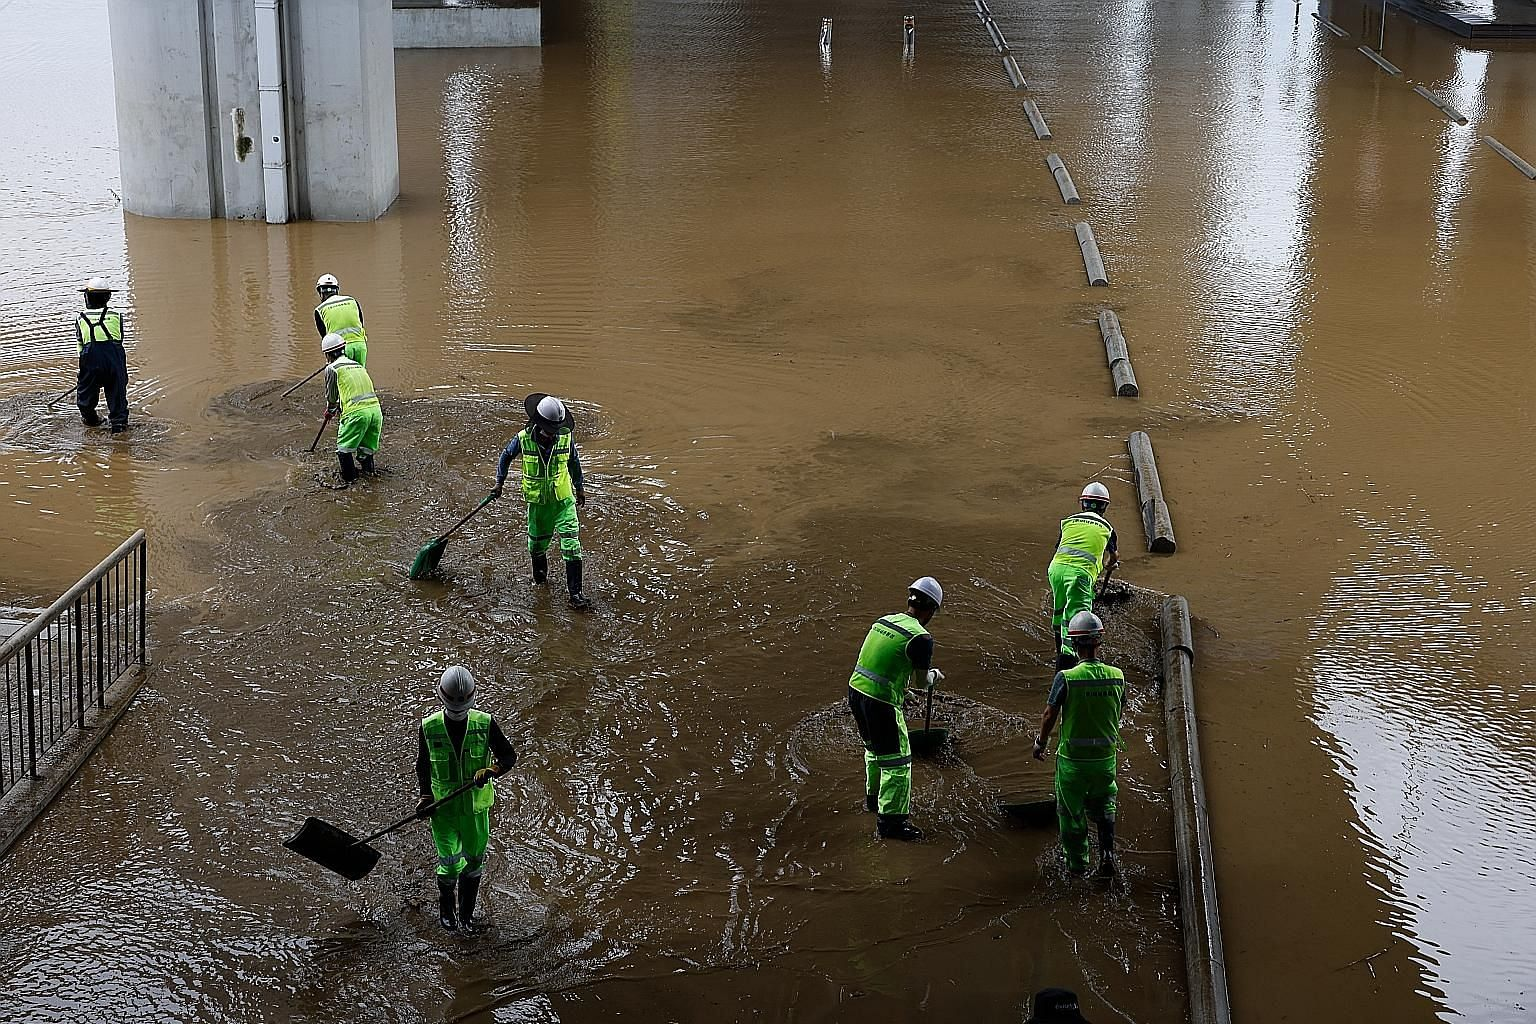 South Korean workers clearing mud from a flooded area under a bridge in Seoul on Tuesday after heavy rain triggered floods and landslides.